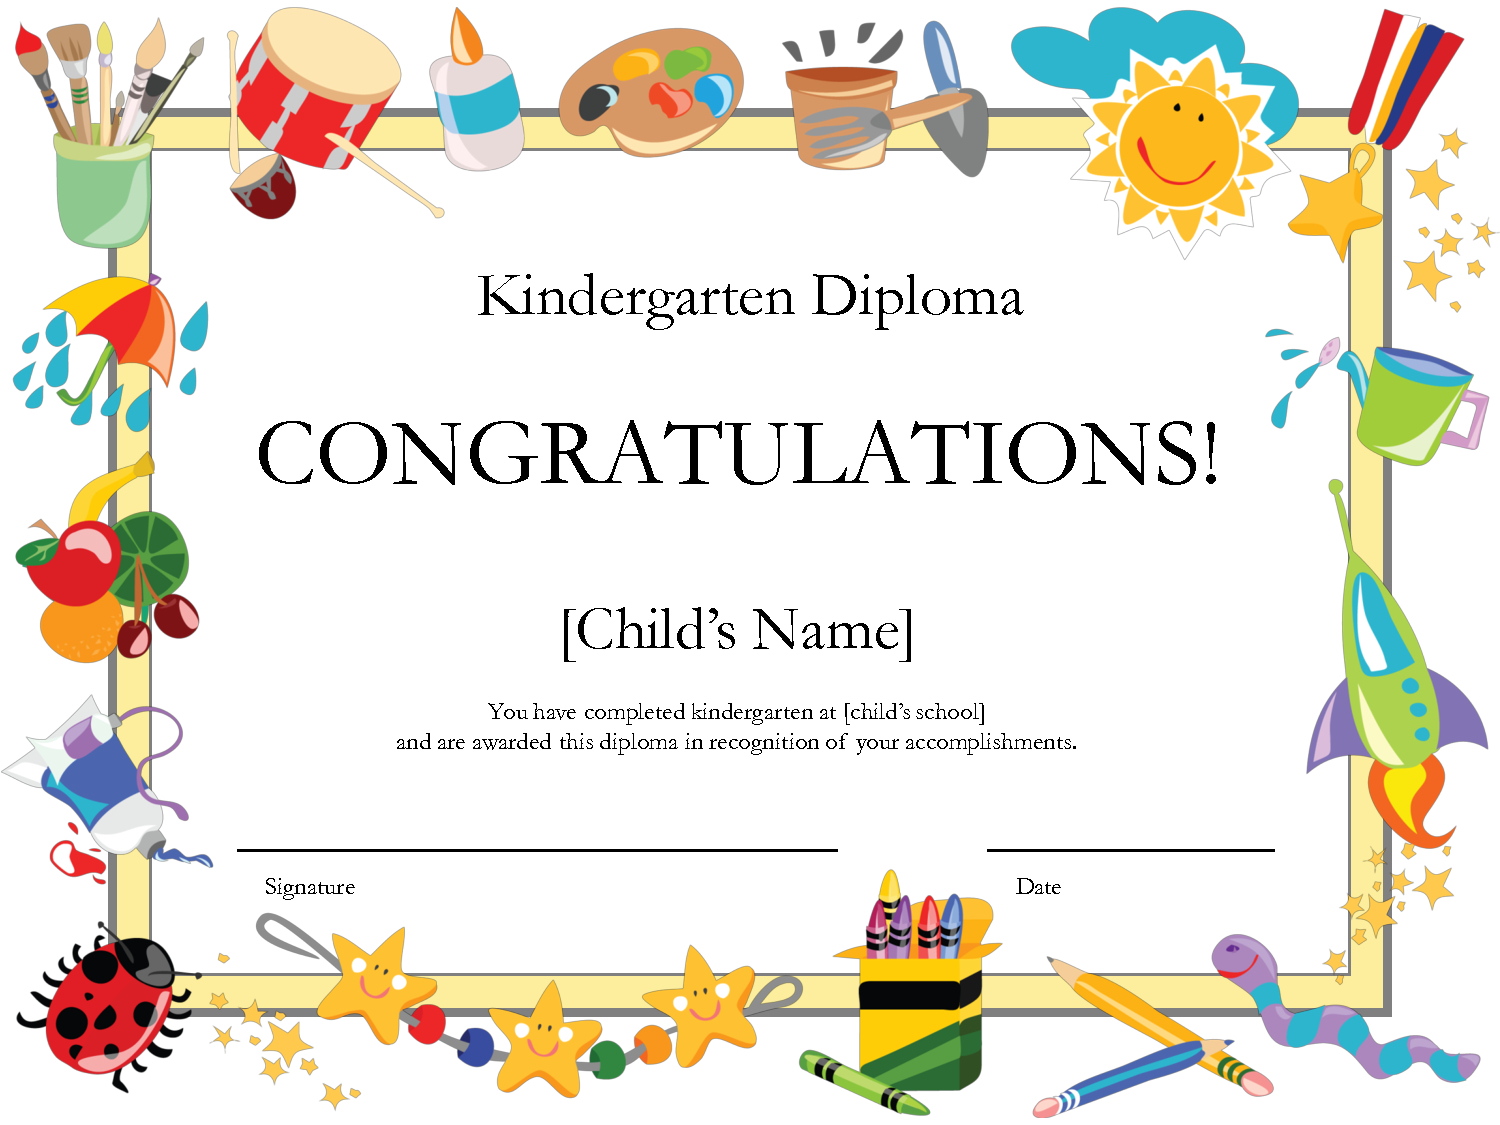 Free Printable Kindergarten Graduation Certificate Template | Umi - Free Printable School Certificates Templates